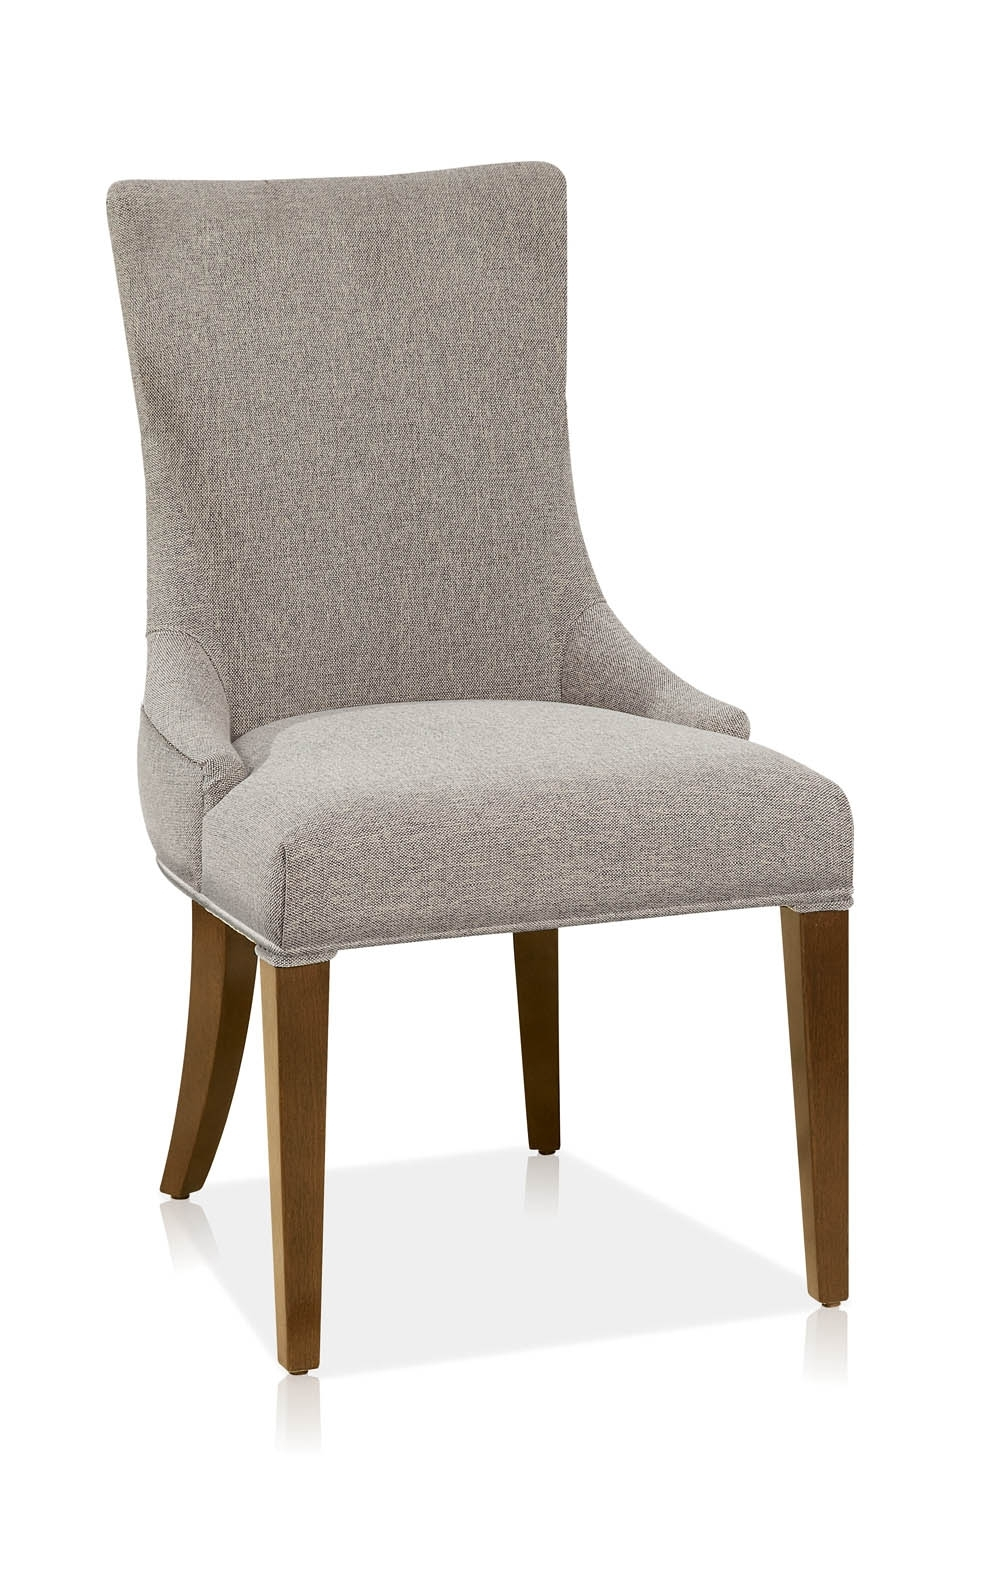 Widely Used Mckenzie Side Chair (#20 of 20)